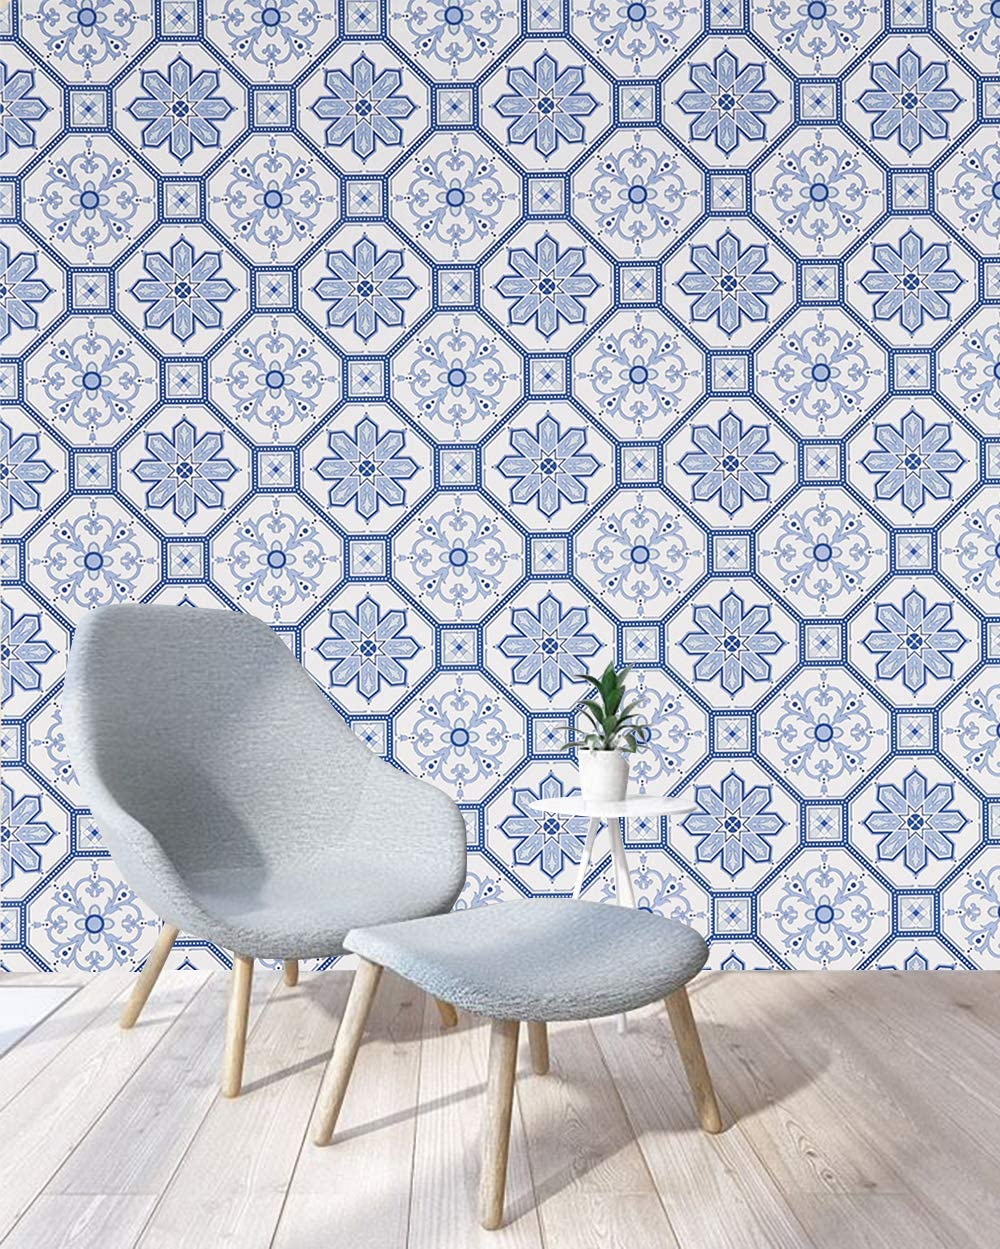 Contact Paper Film Peel and Stick Waterproof Wallpaper Self Adhesive Removable